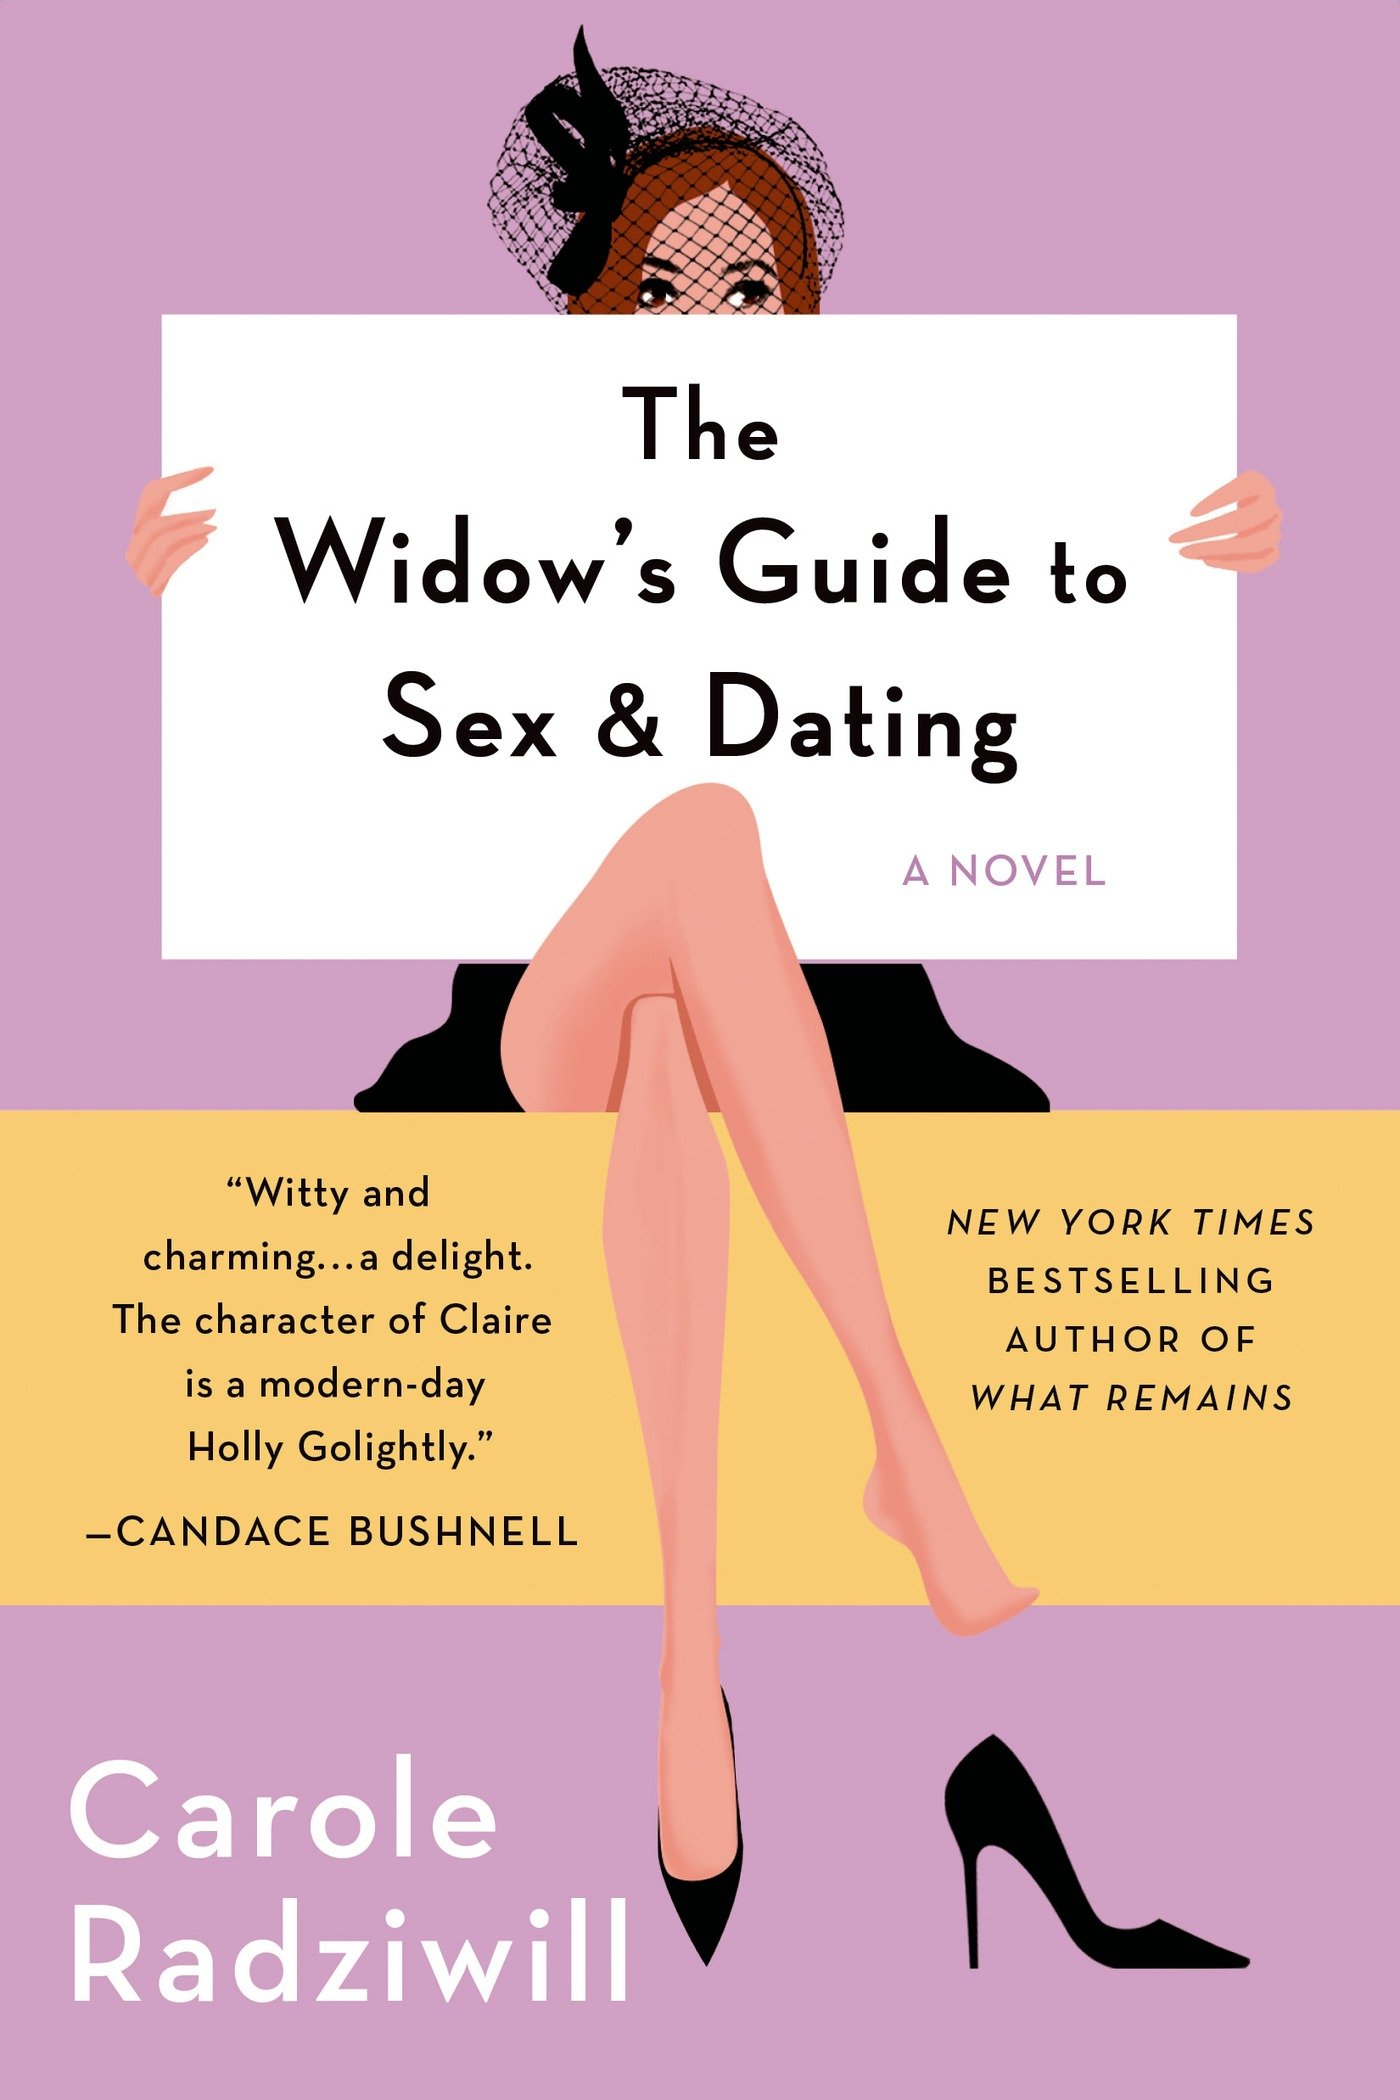 Widows guide to sex and dating reviews